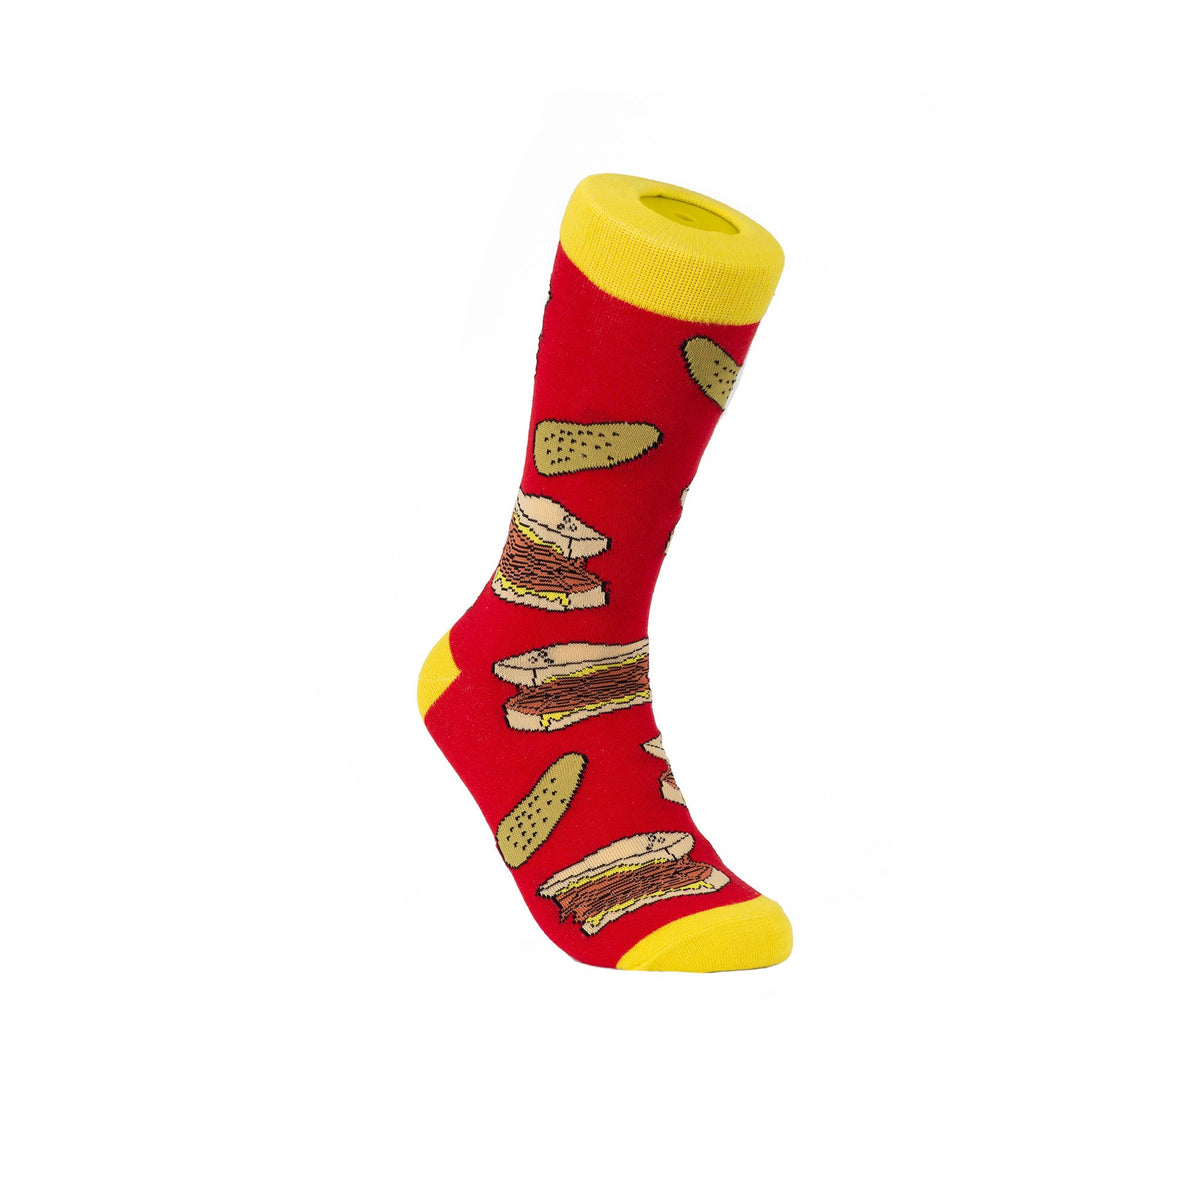 Montreal Smoked Meat and Pickle Socks - Main and Local